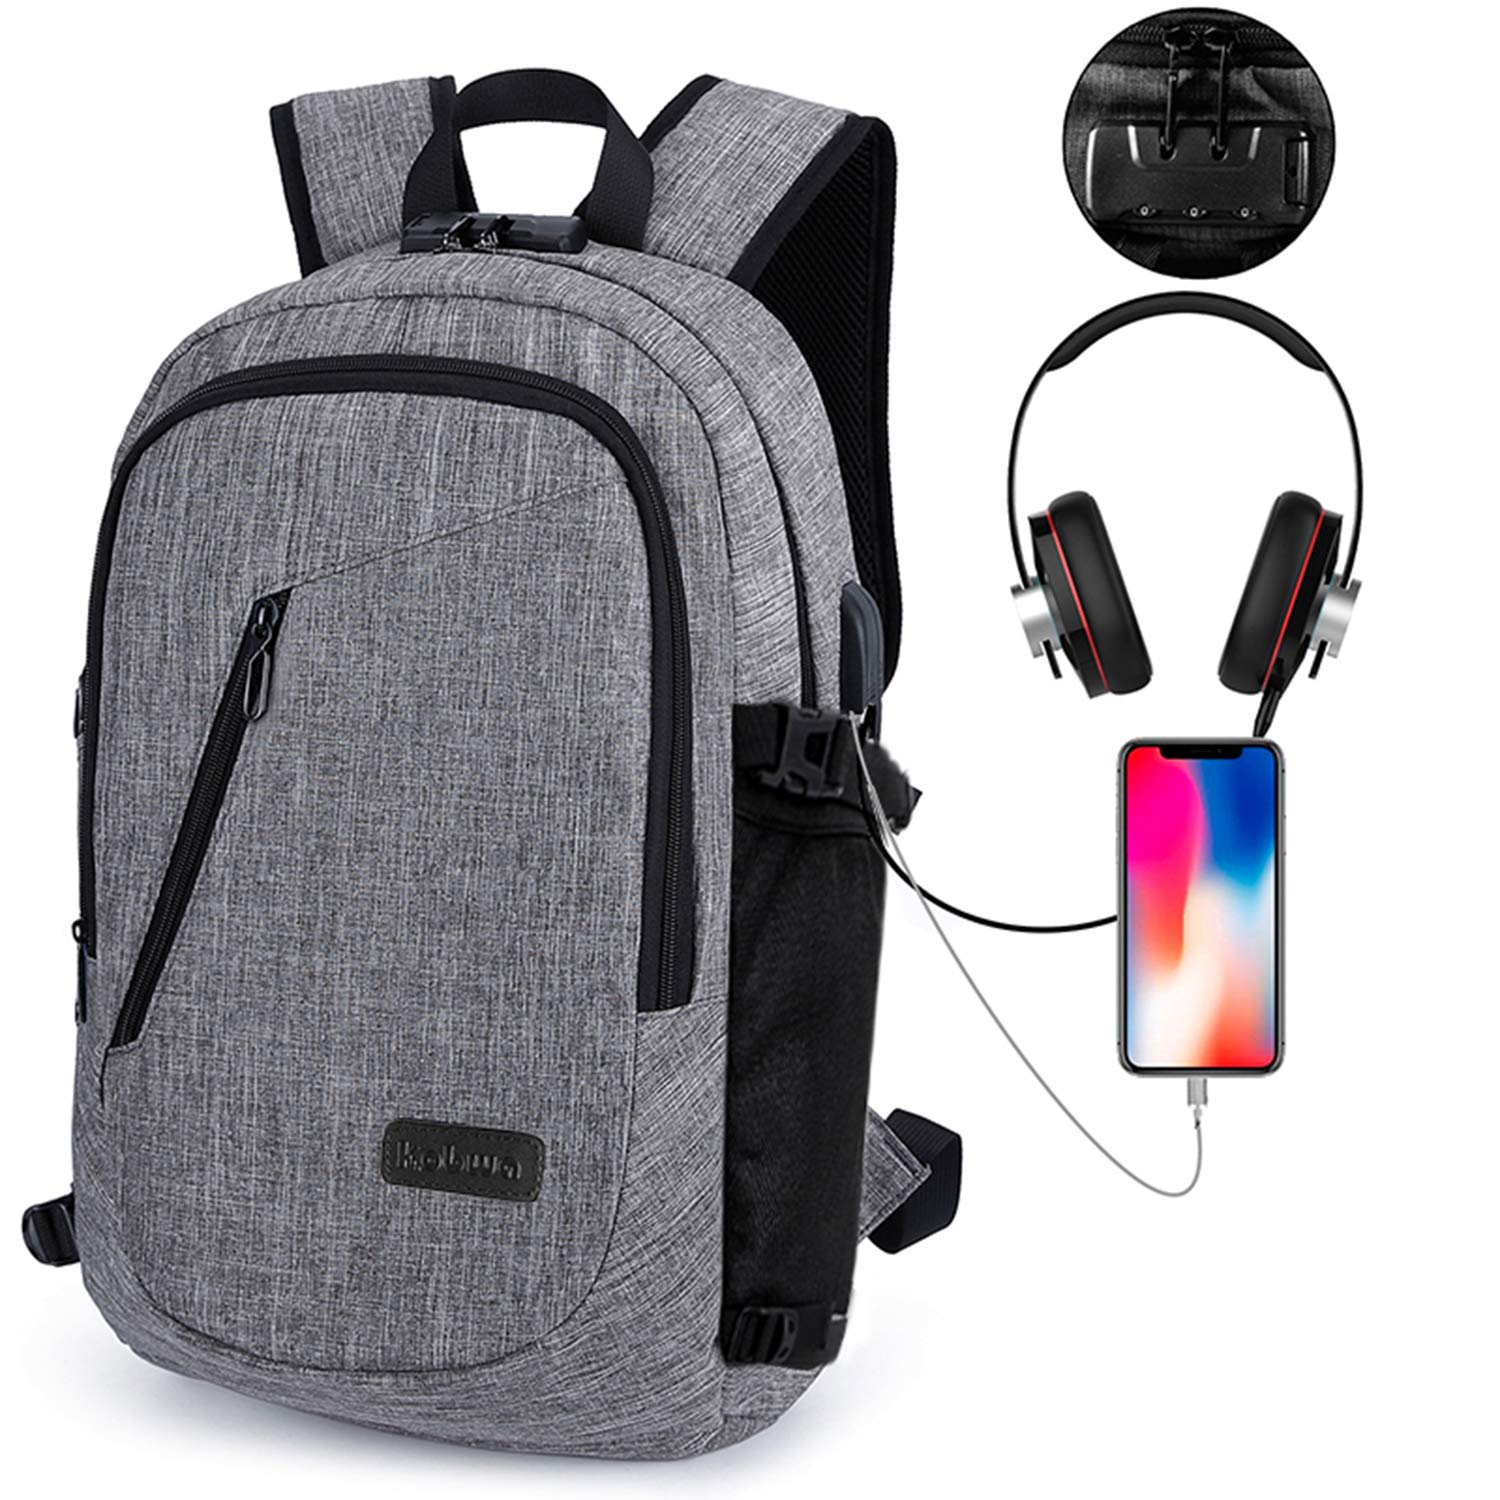 Laptop Backpack, Kobwa Anti-theft Business Slim Computer Bag With USB Charging Port and Headphone Port For Women and Men, Fits Up to 15.6 Inch Laptop Notebook and Tablet IPad (Black) 6025779654029